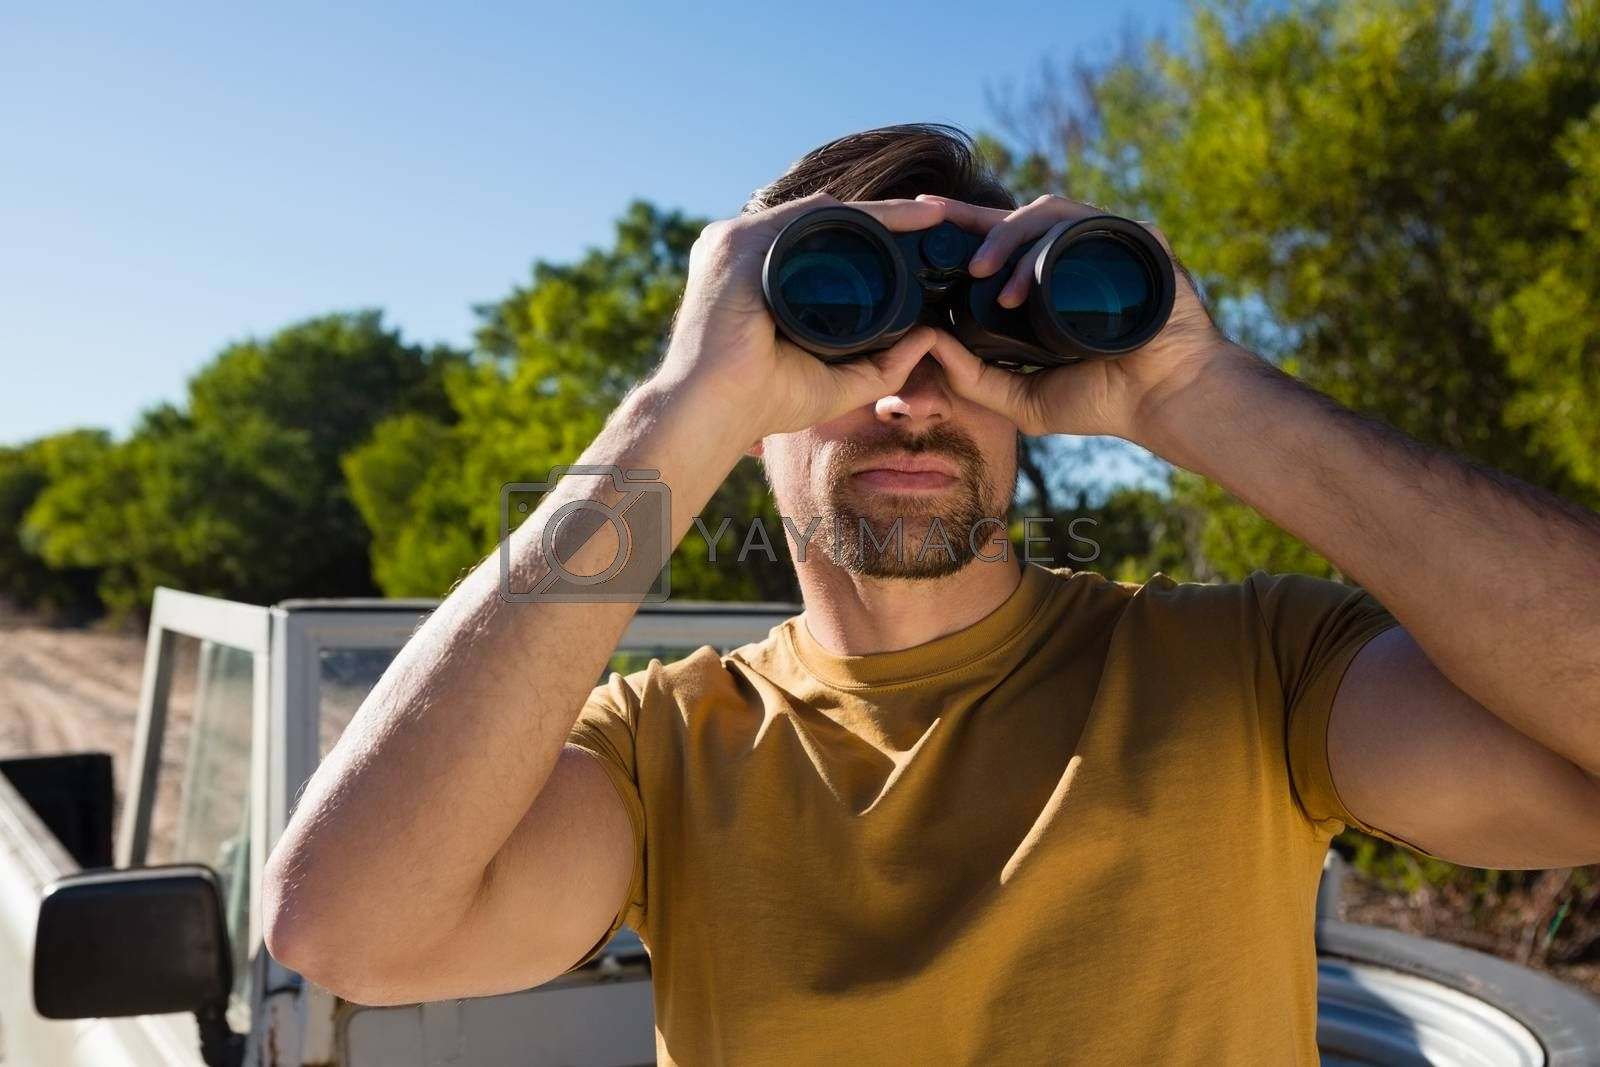 Man looking through binocular by Wavebreakmedia